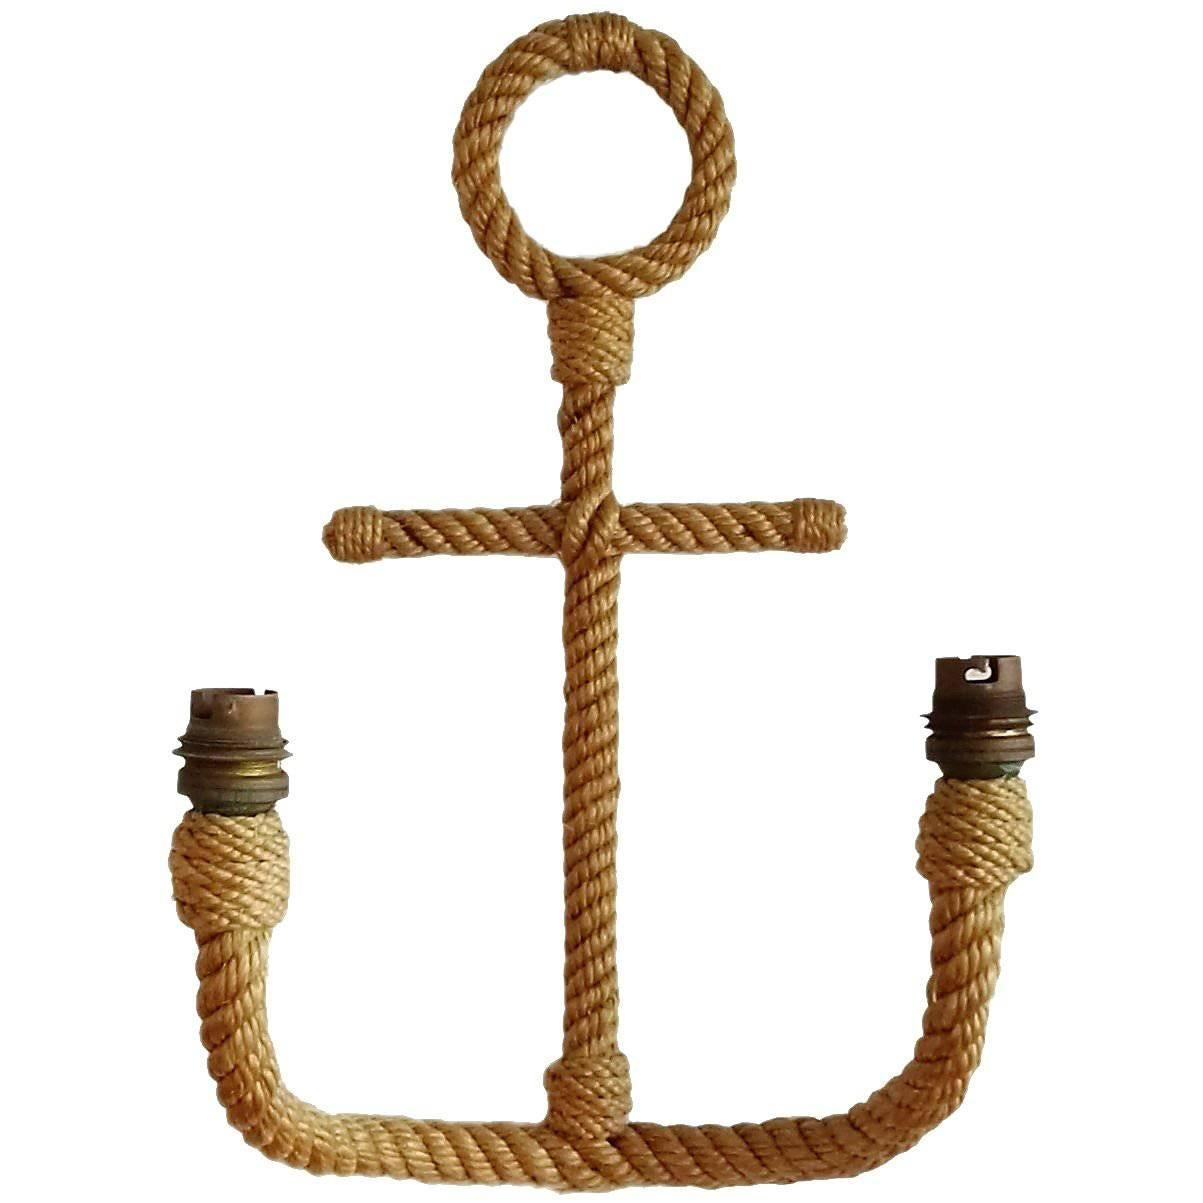 Single Anchor Shaped Rope Sconce by Audoux Minet, France, 1960s